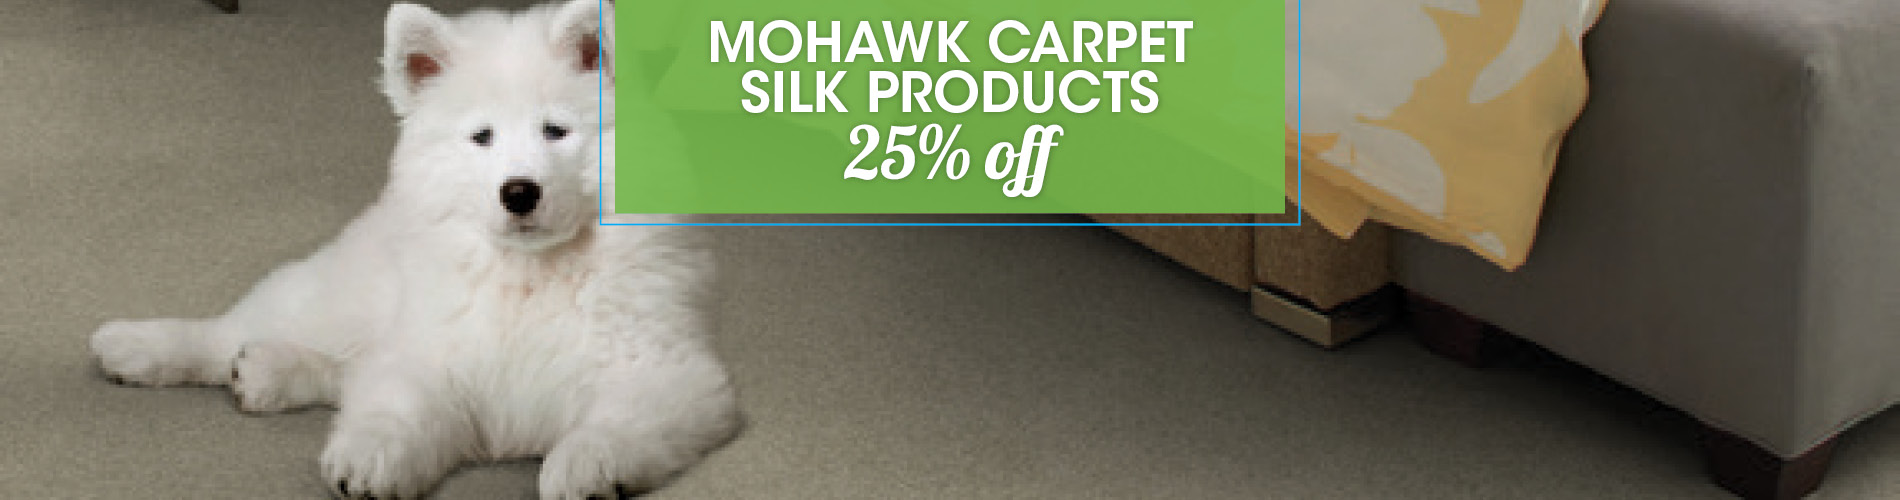 Mohawk Silk Carpet 25% OFF this month at Abbey Van Dam Carpet and More